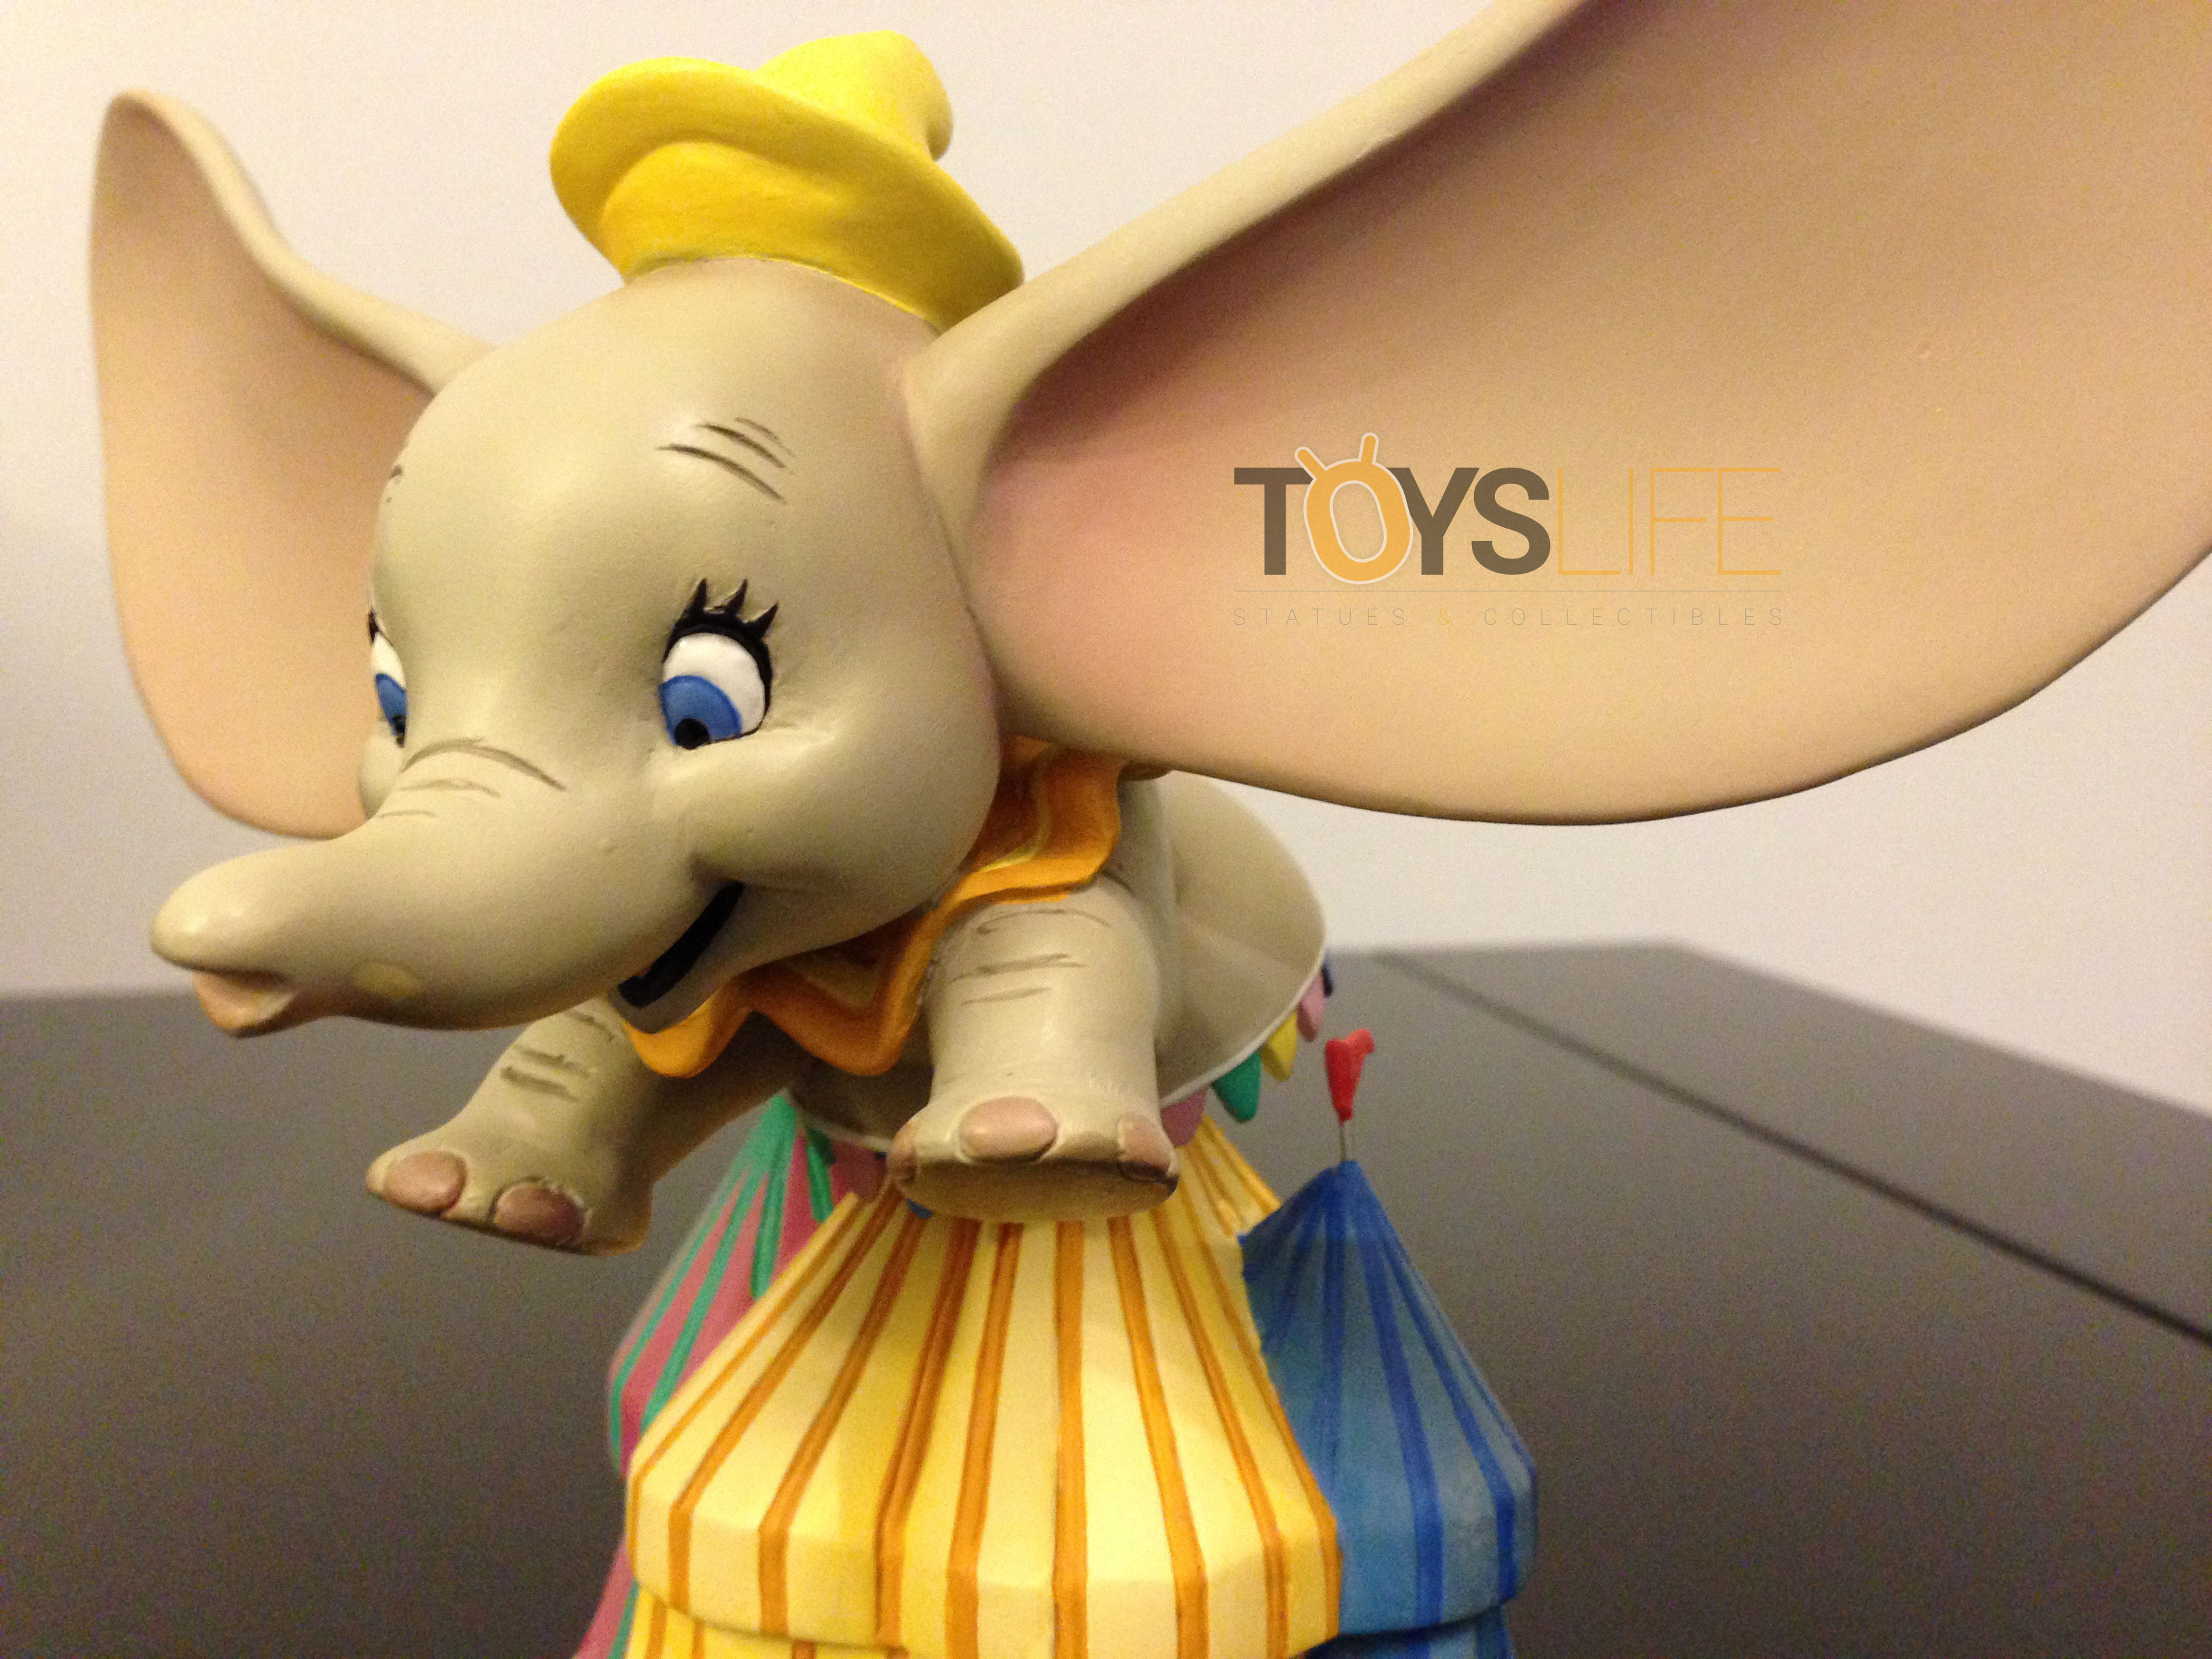 grand-jester-studios-dumbo-bust-toyslife-review-02